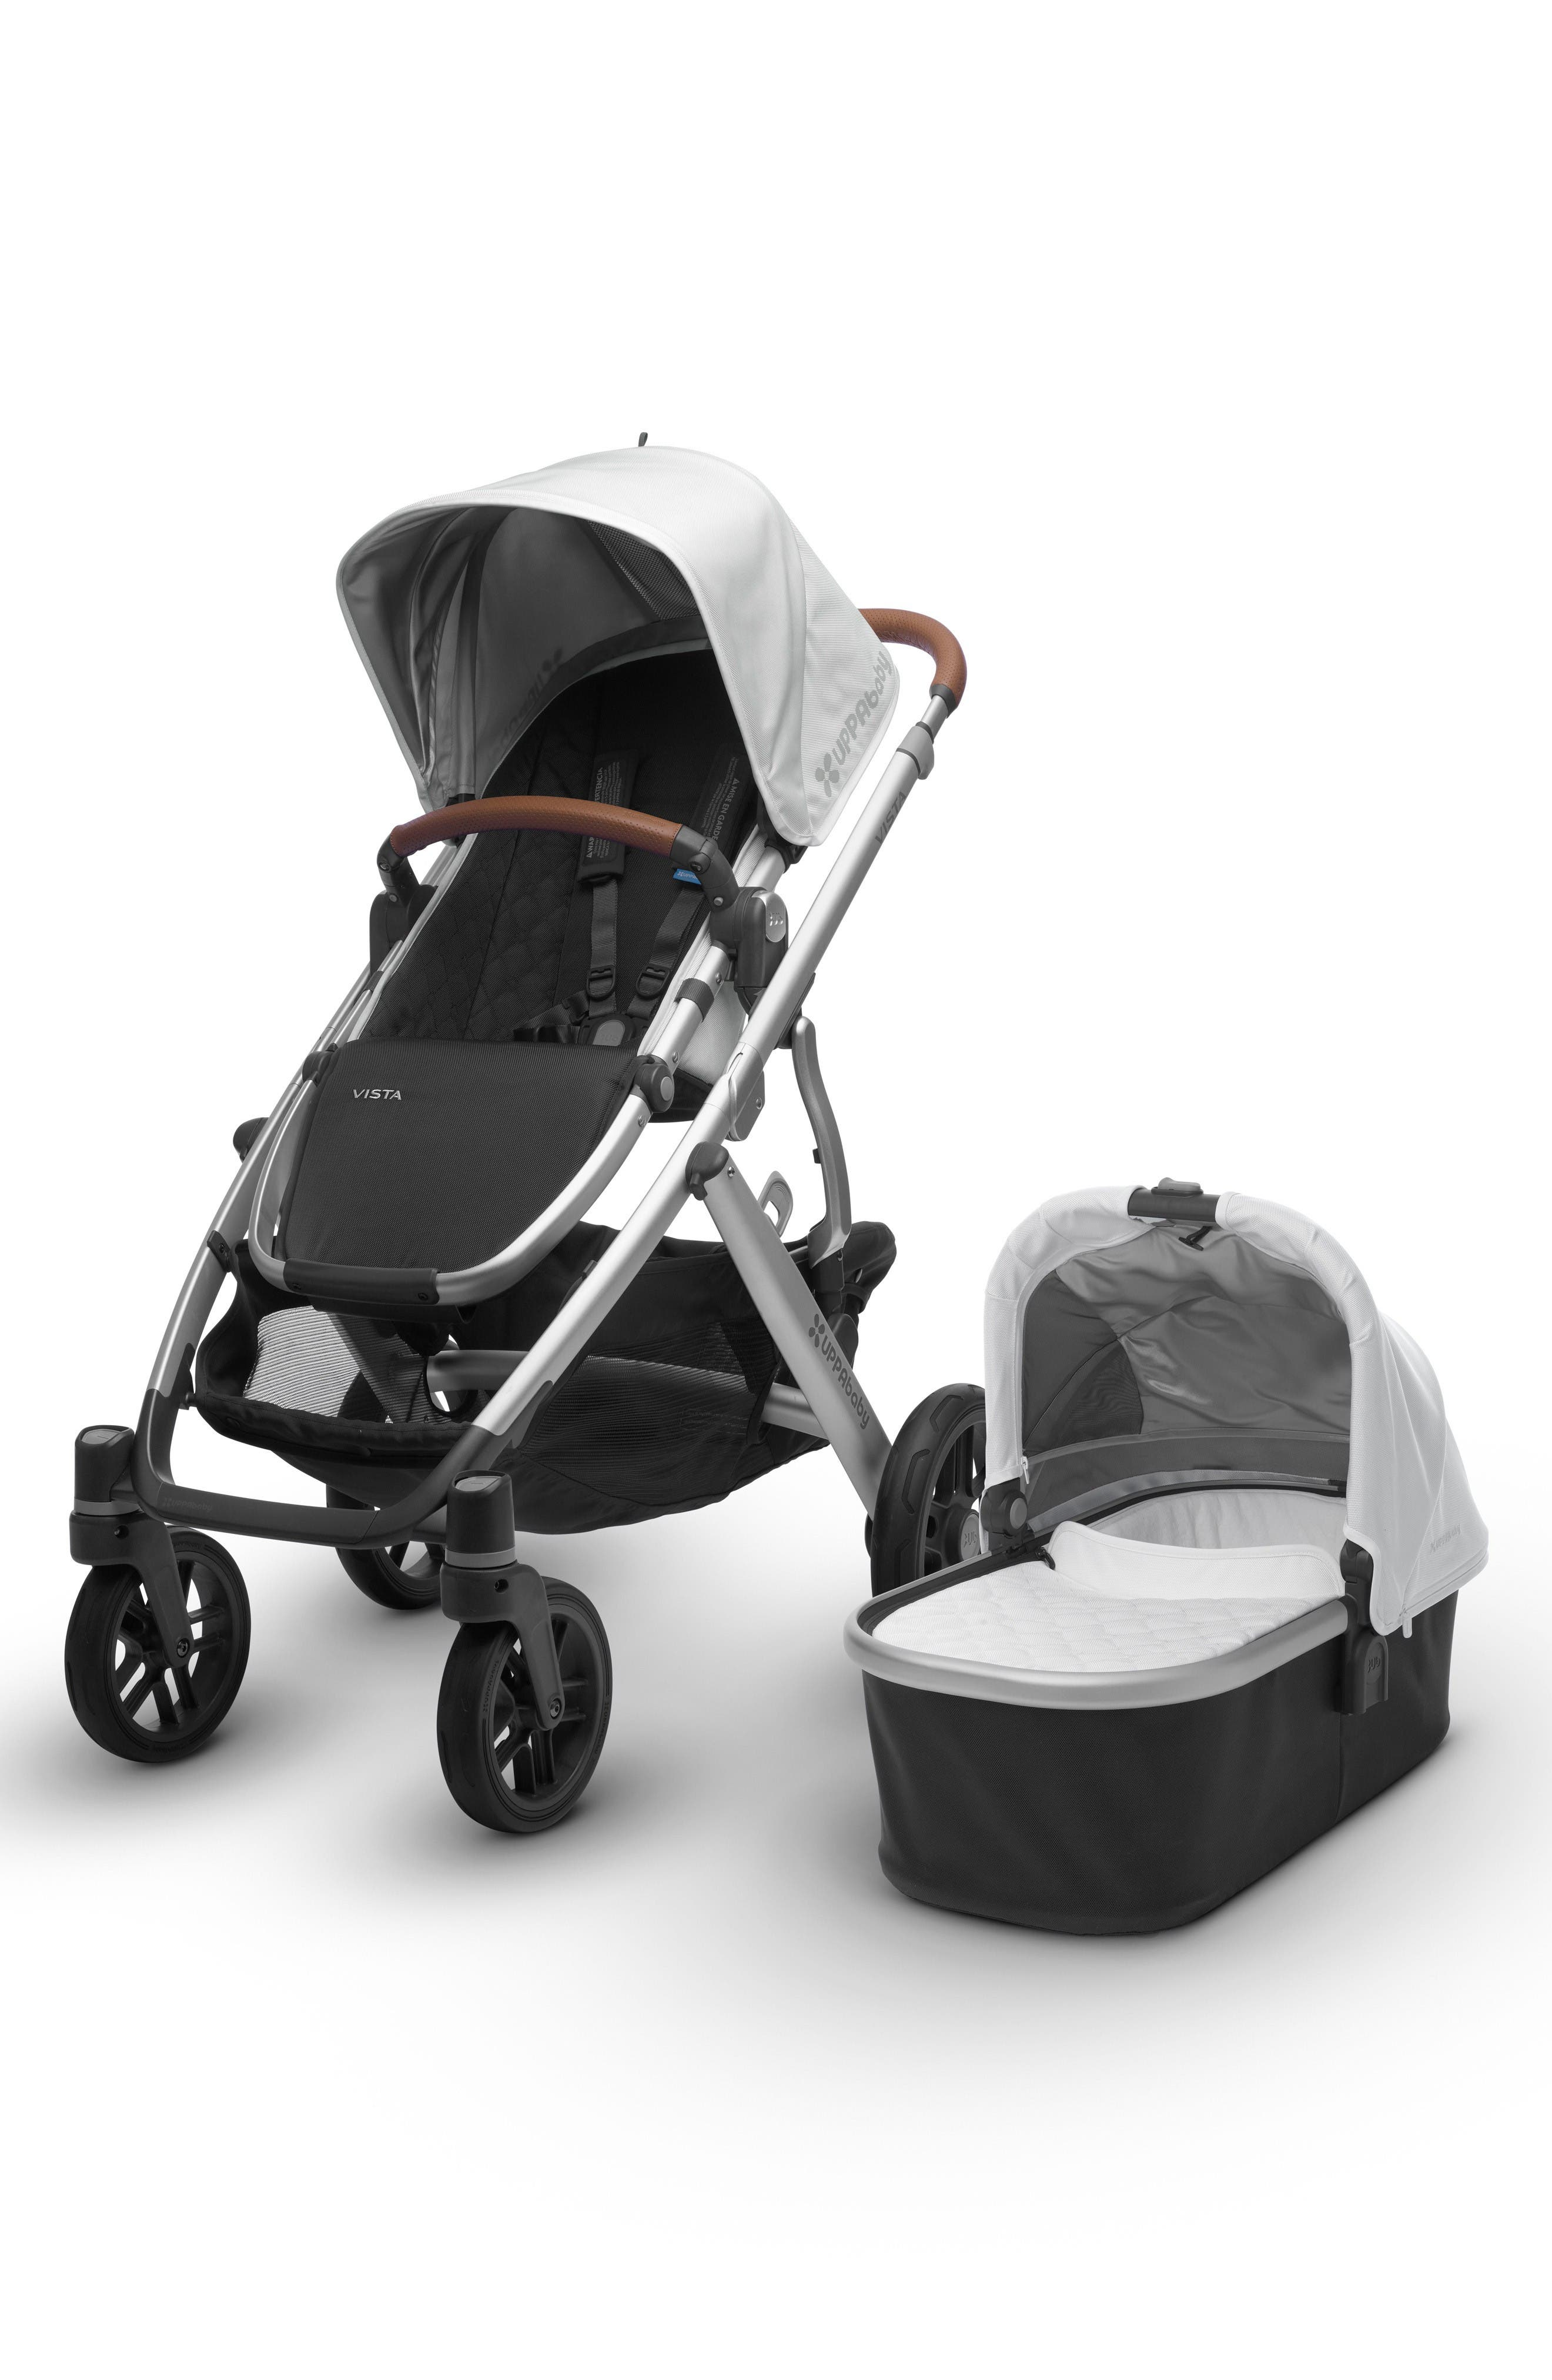 UPPAbaby 2017 VISTA Aluminum Frame Convertible Stroller with Bassinet & Toddler Seat